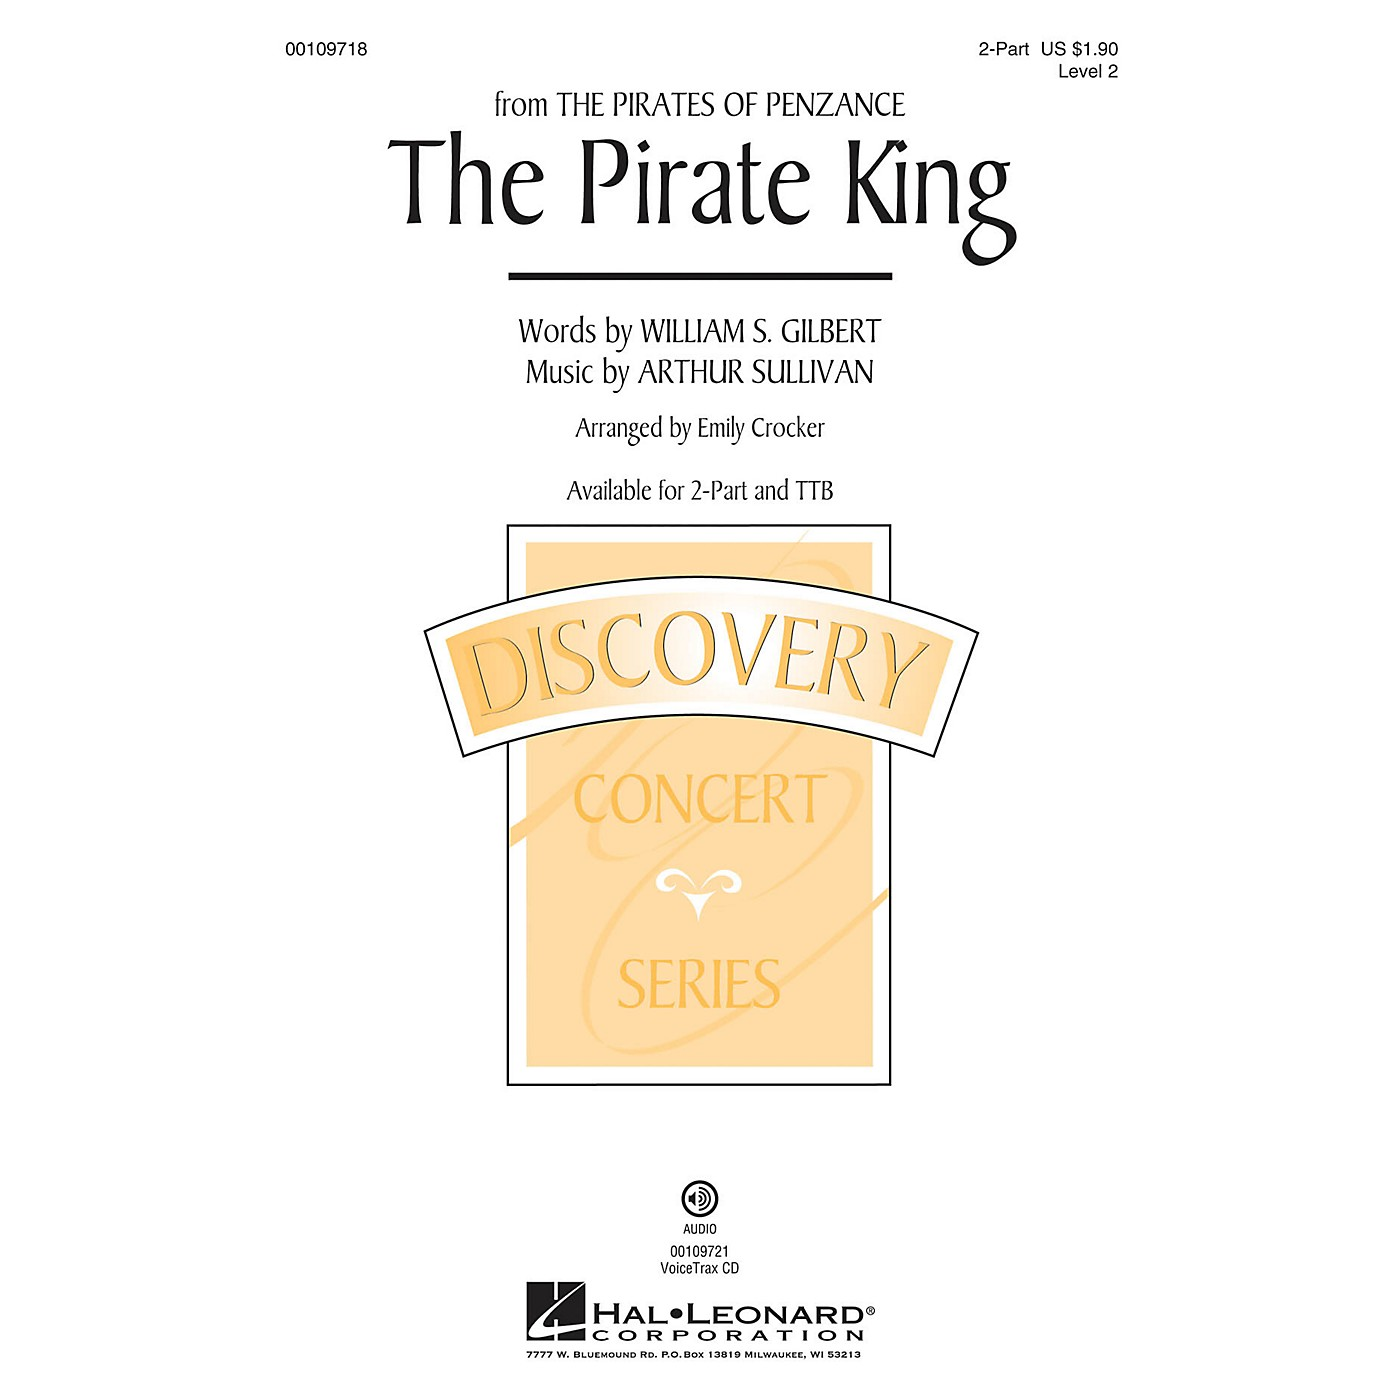 Hal Leonard The Pirate King (from Pirates of Penaznce) Discovery Level 2 2-Part arranged by Emily Crocker thumbnail